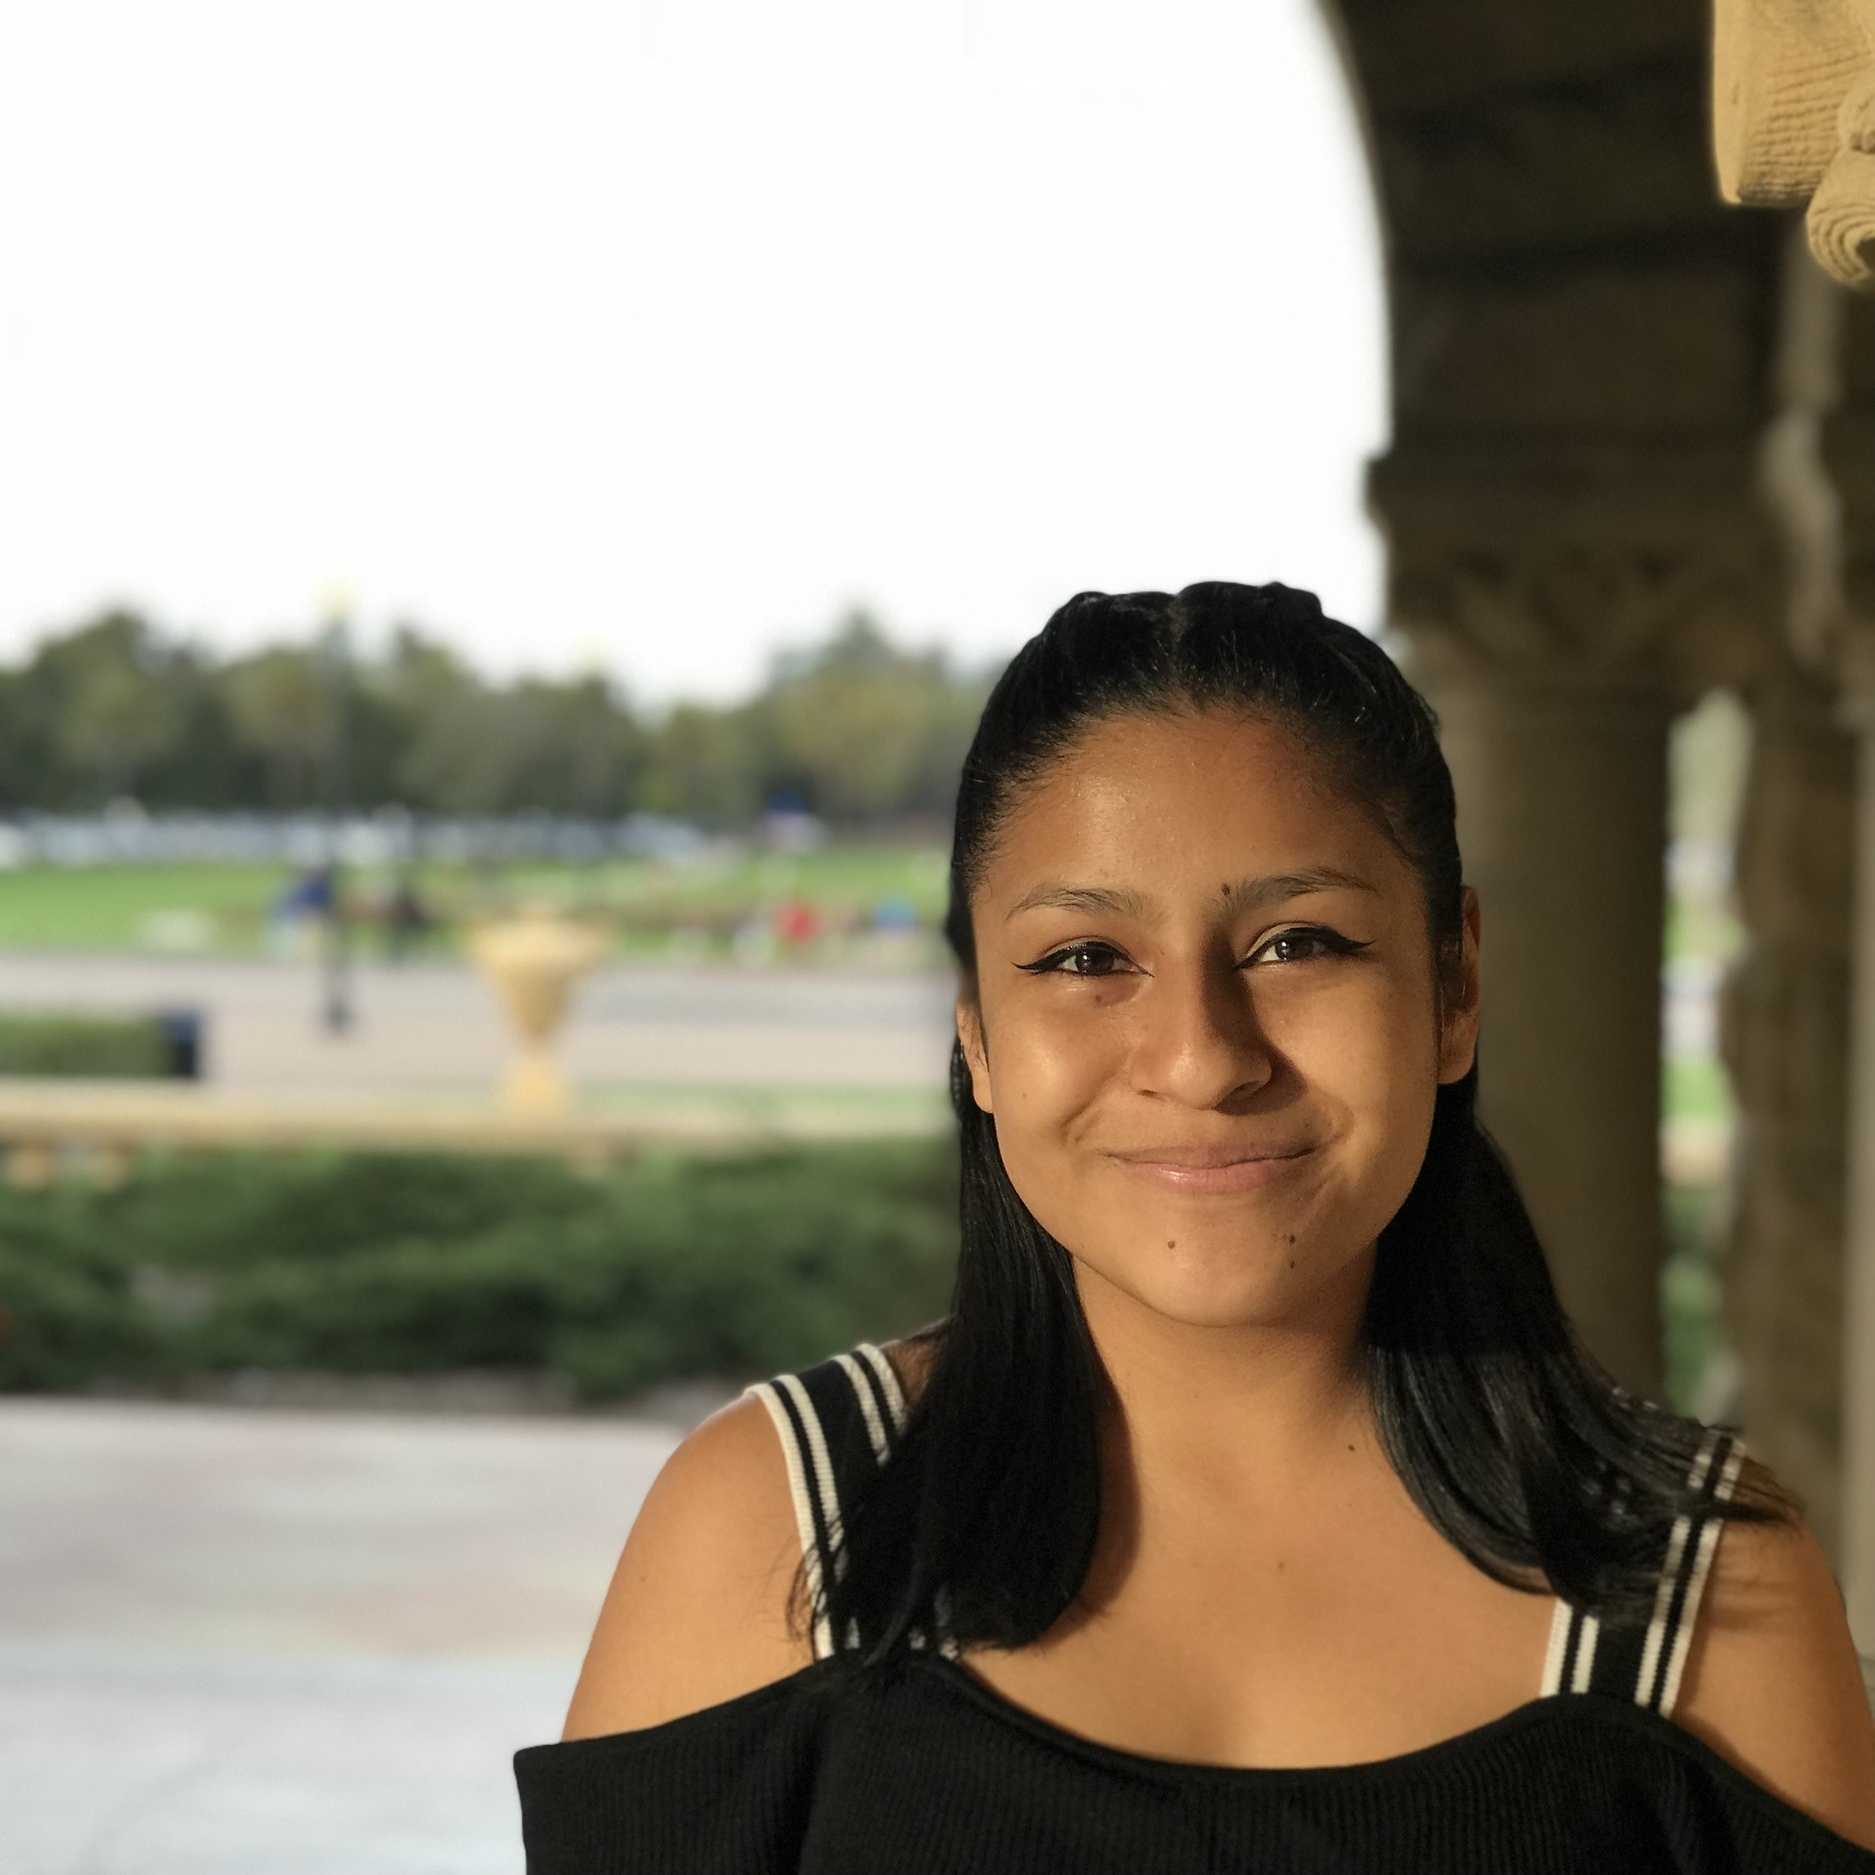 Lorena Diosdado - Fundraising Committee Co-Chair, she/herLorena Diosdado is a sophomore hailing from Frisco, Texas majoring in art practice and minoring in spanish. She first felt empowered as a first generation, low income student while engaging with the thriving FLI community at Stanford and is excited to expand the community's reach.